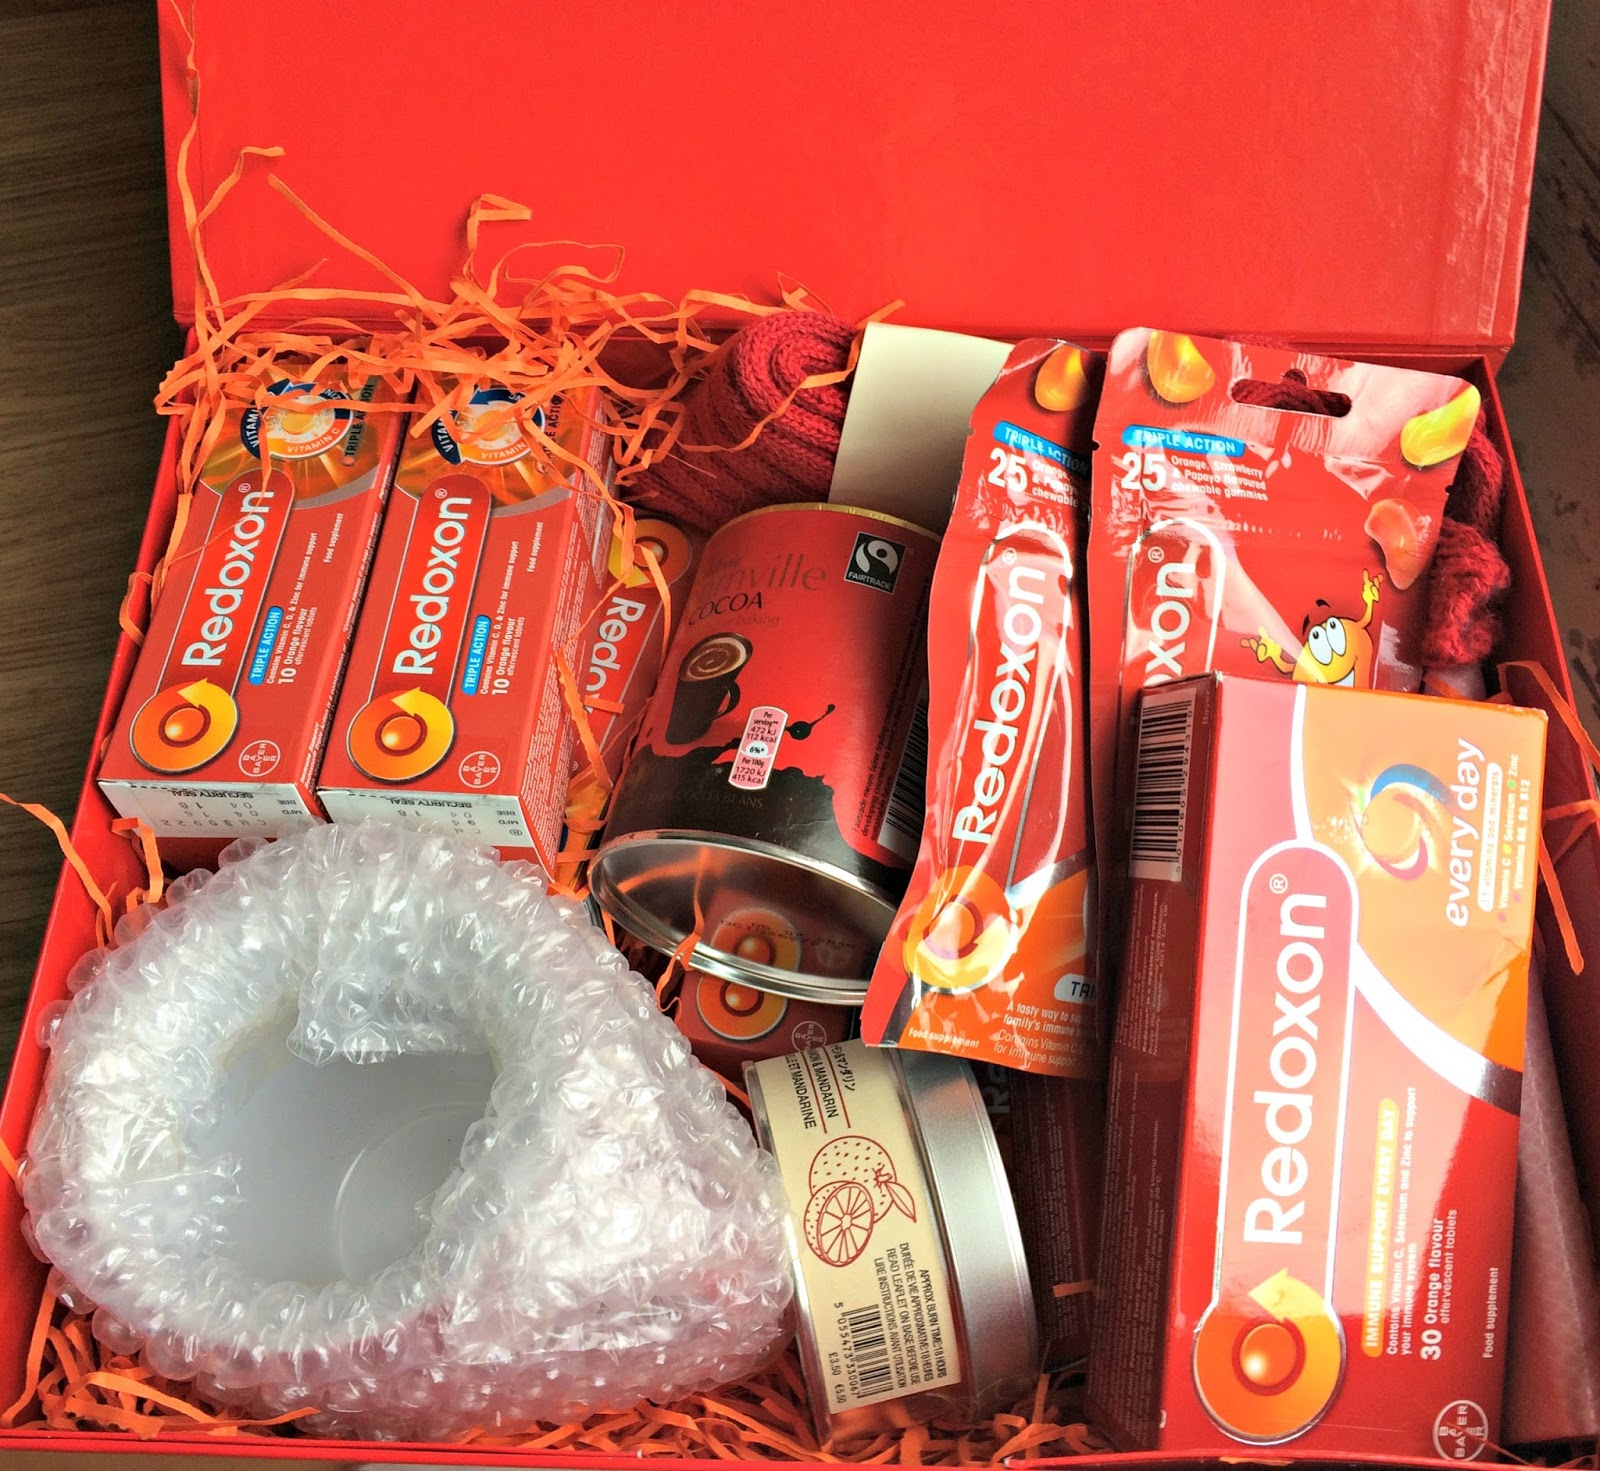 Redoxon goody box giveaway